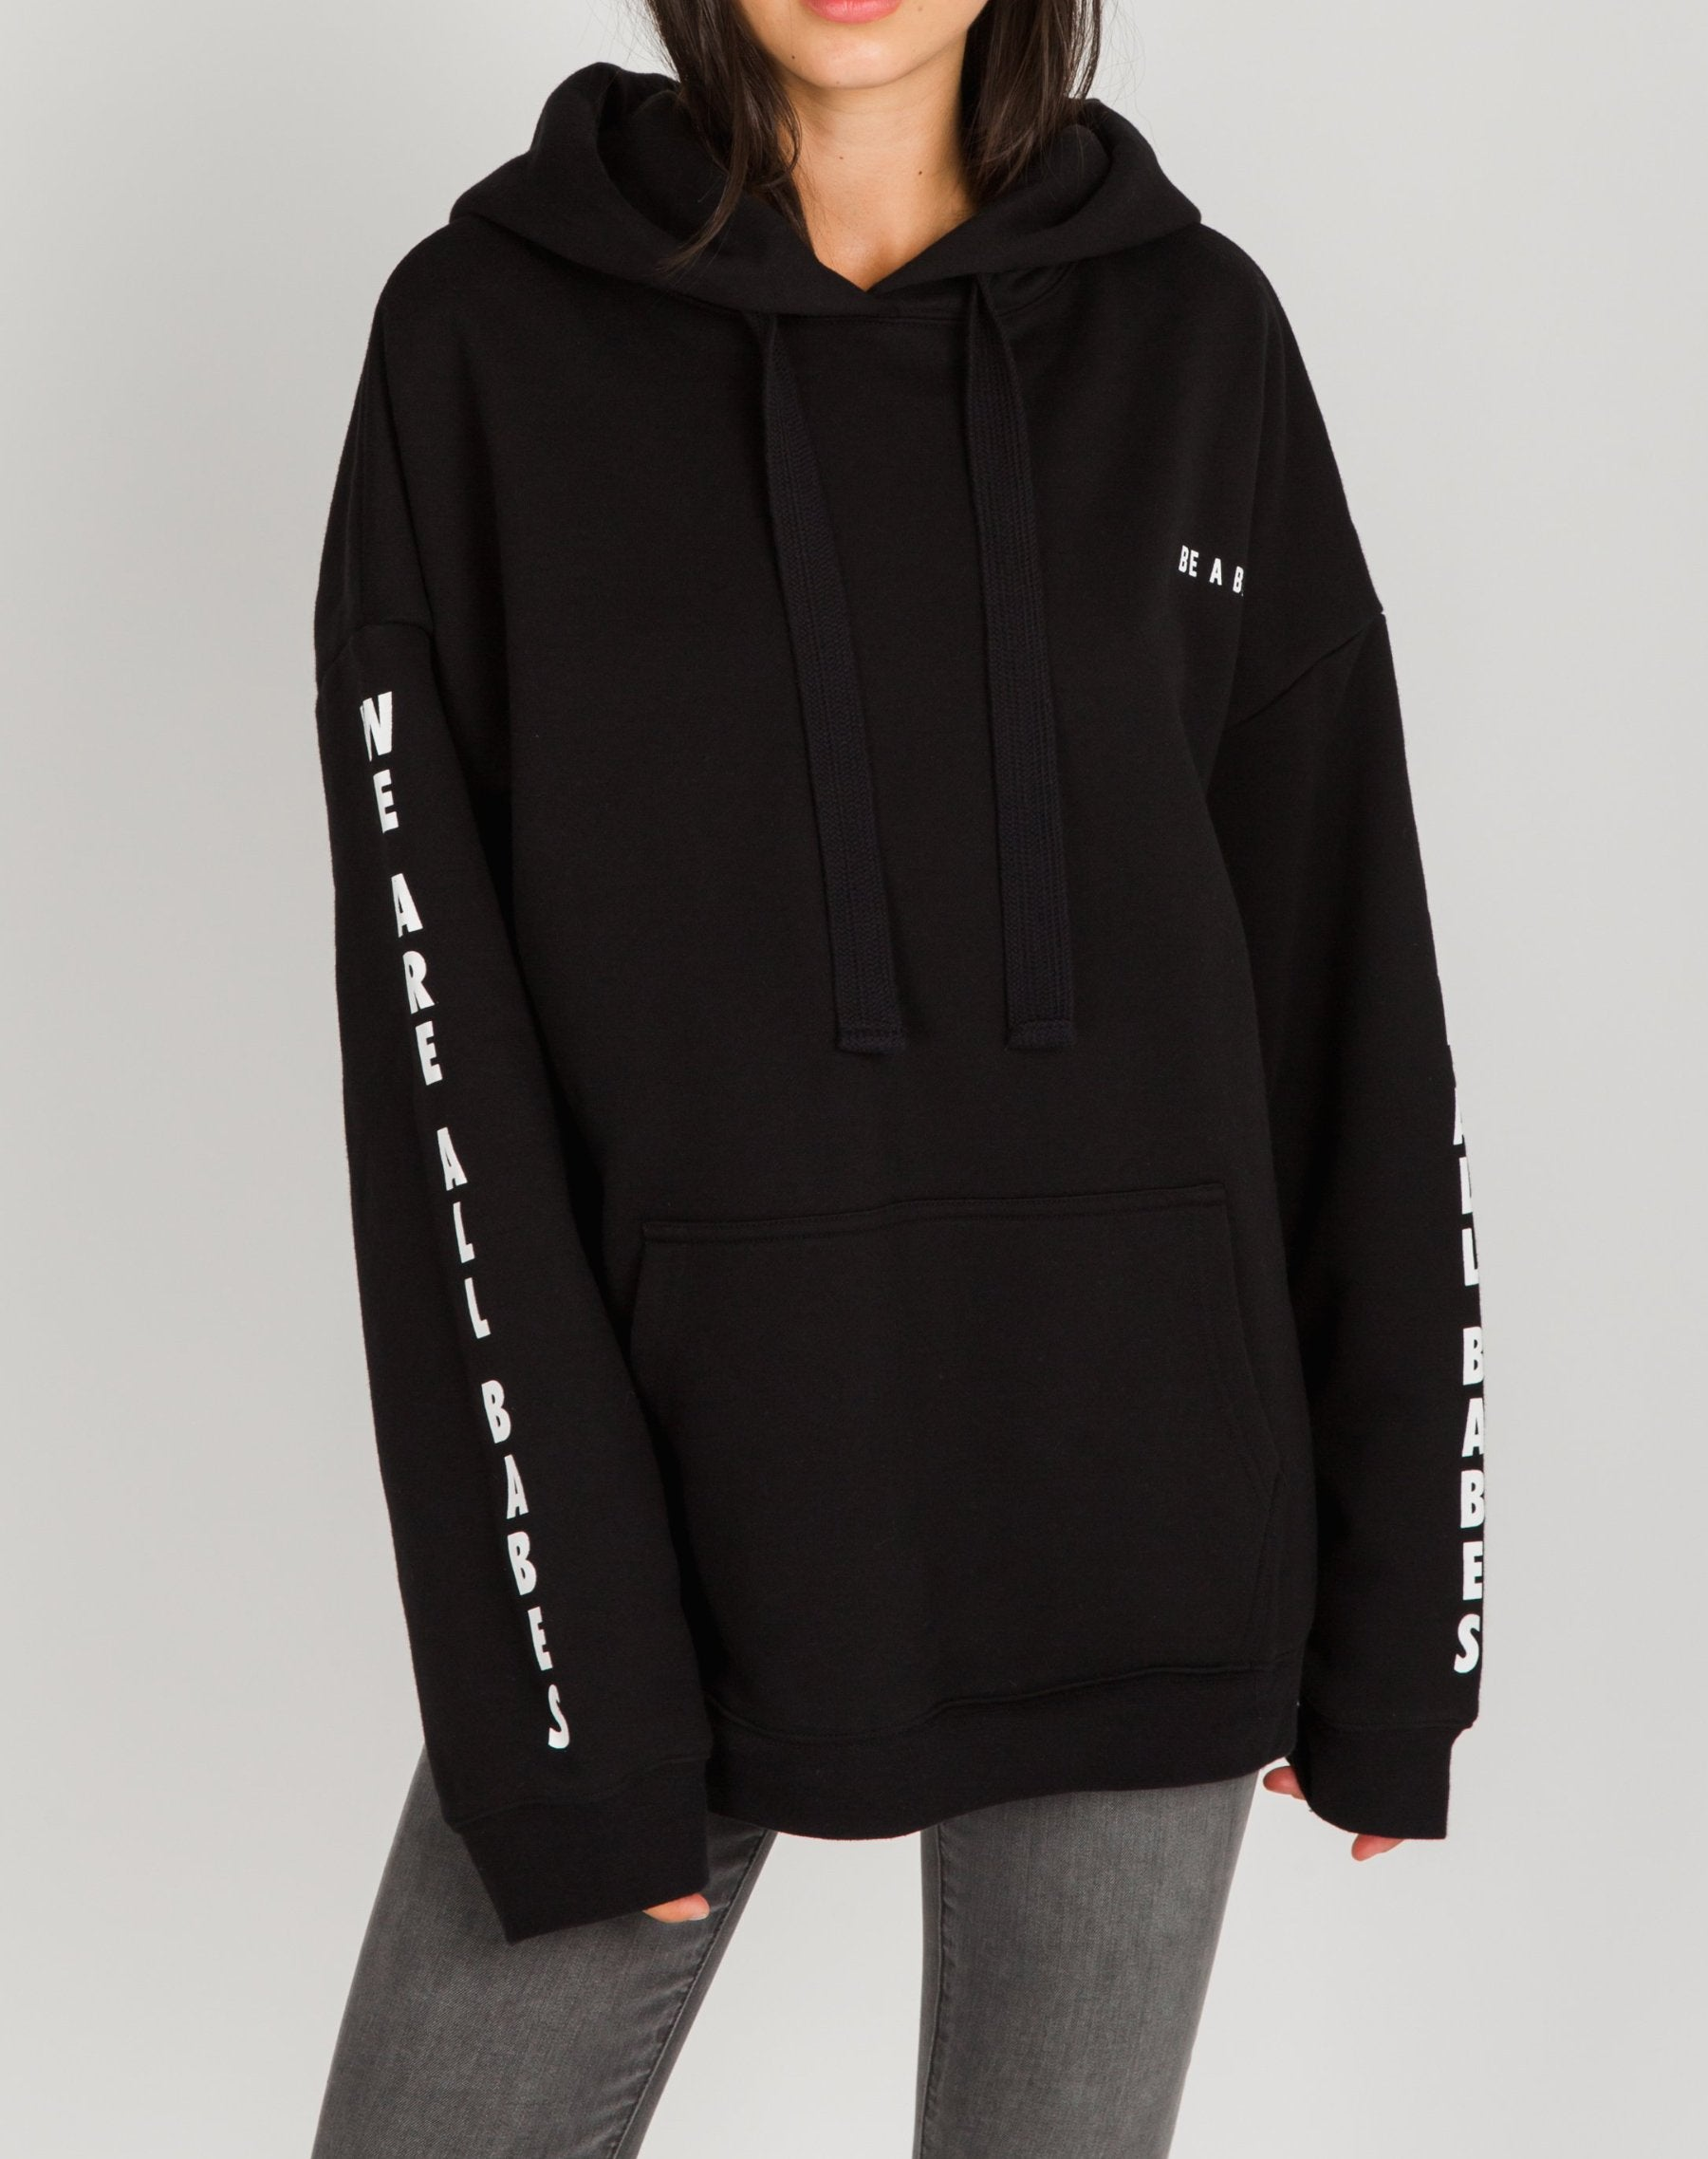 Photo of the Be a Babe big sister hoodie in black by Brunette the Label.